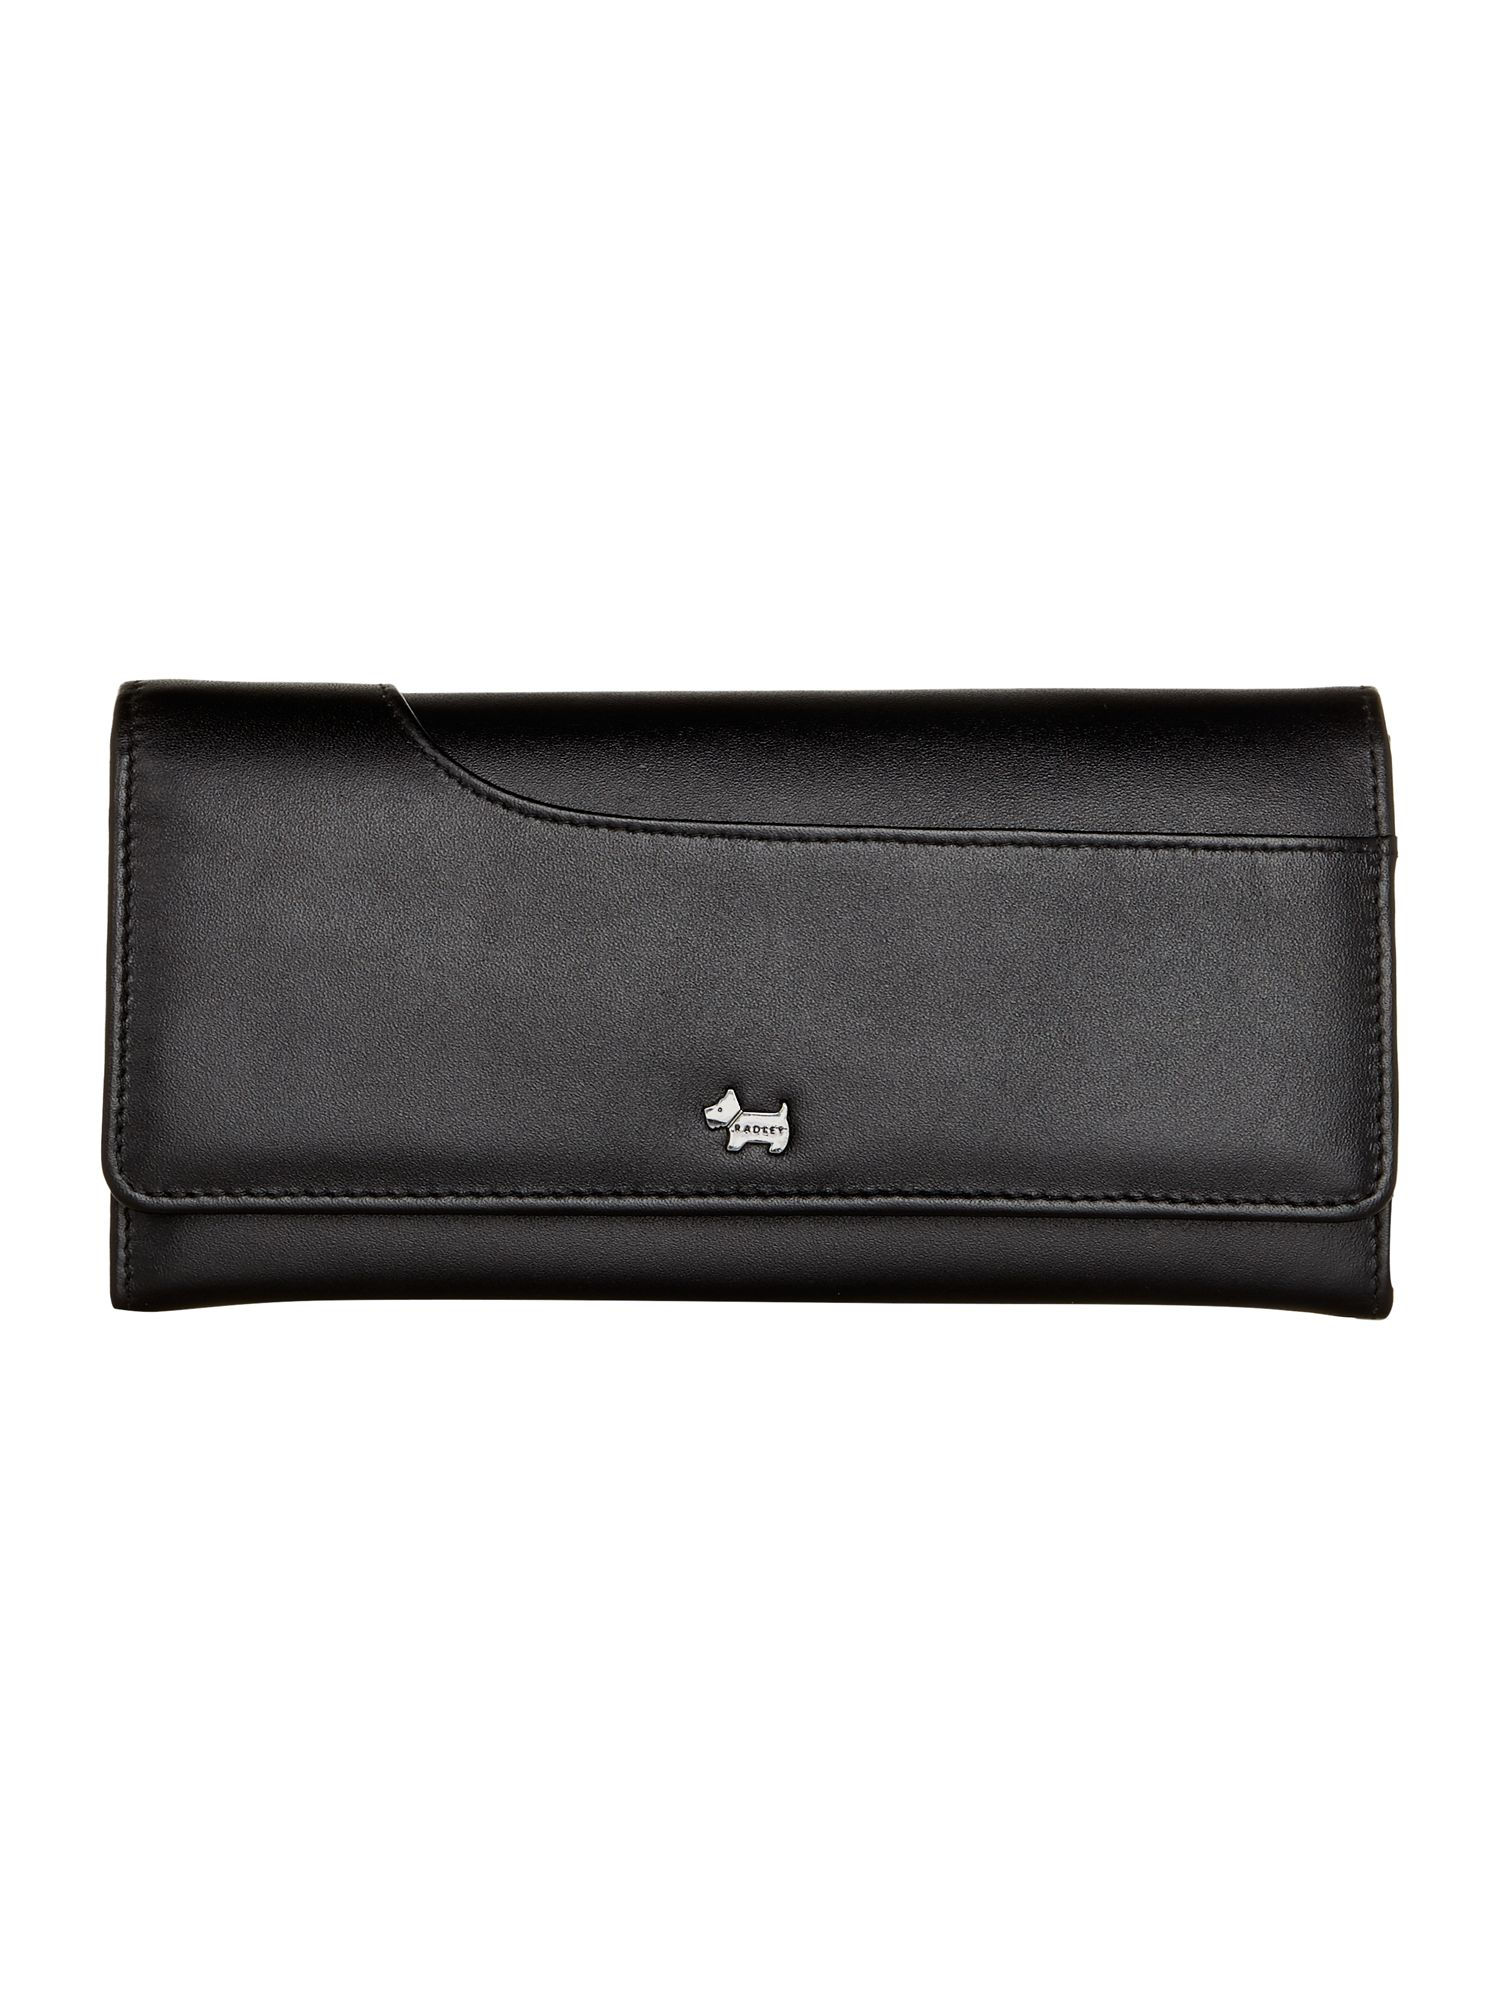 Radley Pocket bag large black flap over purse Black